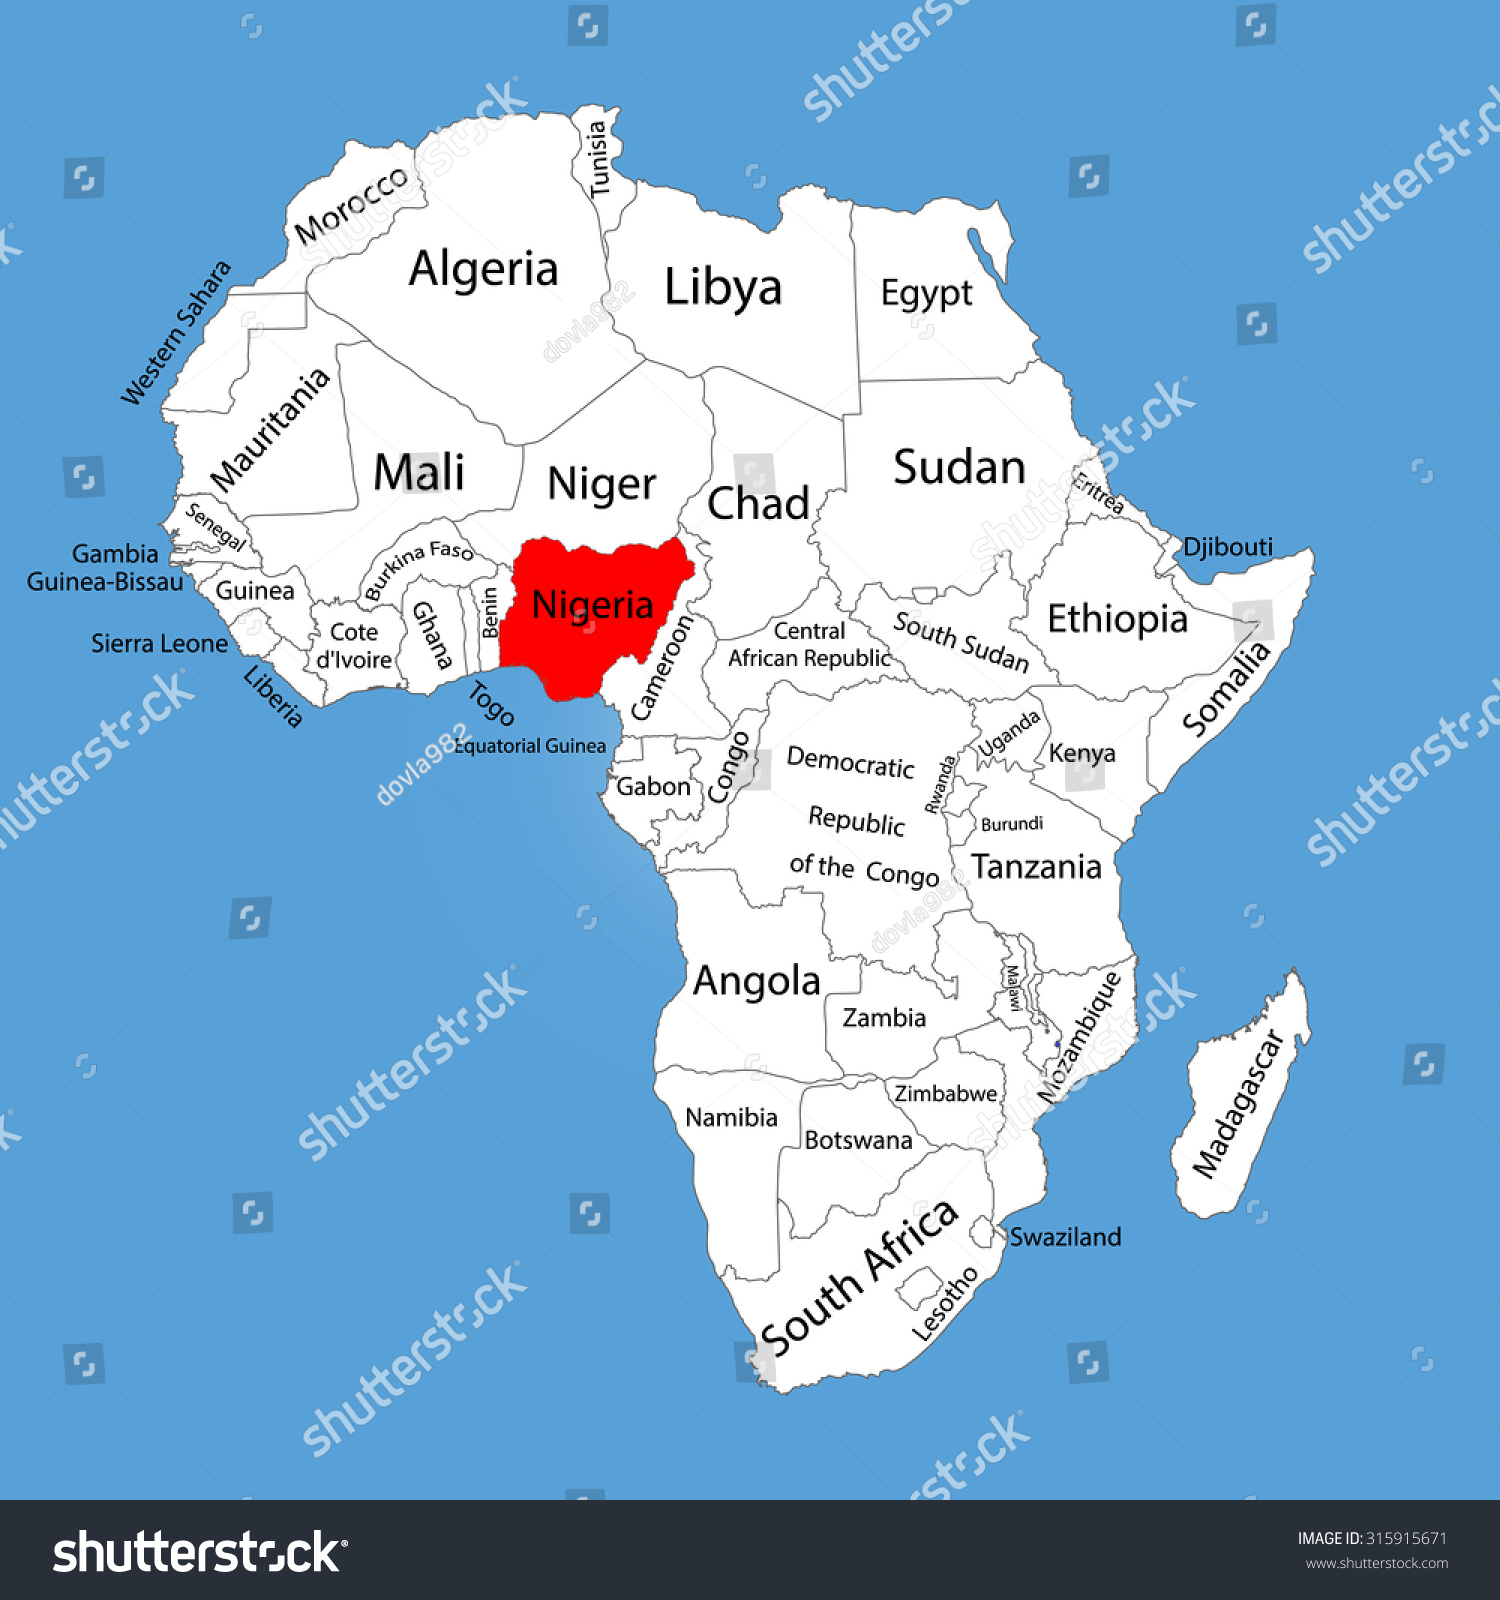 Nigeria Vector Map Silhouette Isolated On Stock Vector (Royalty Free ...